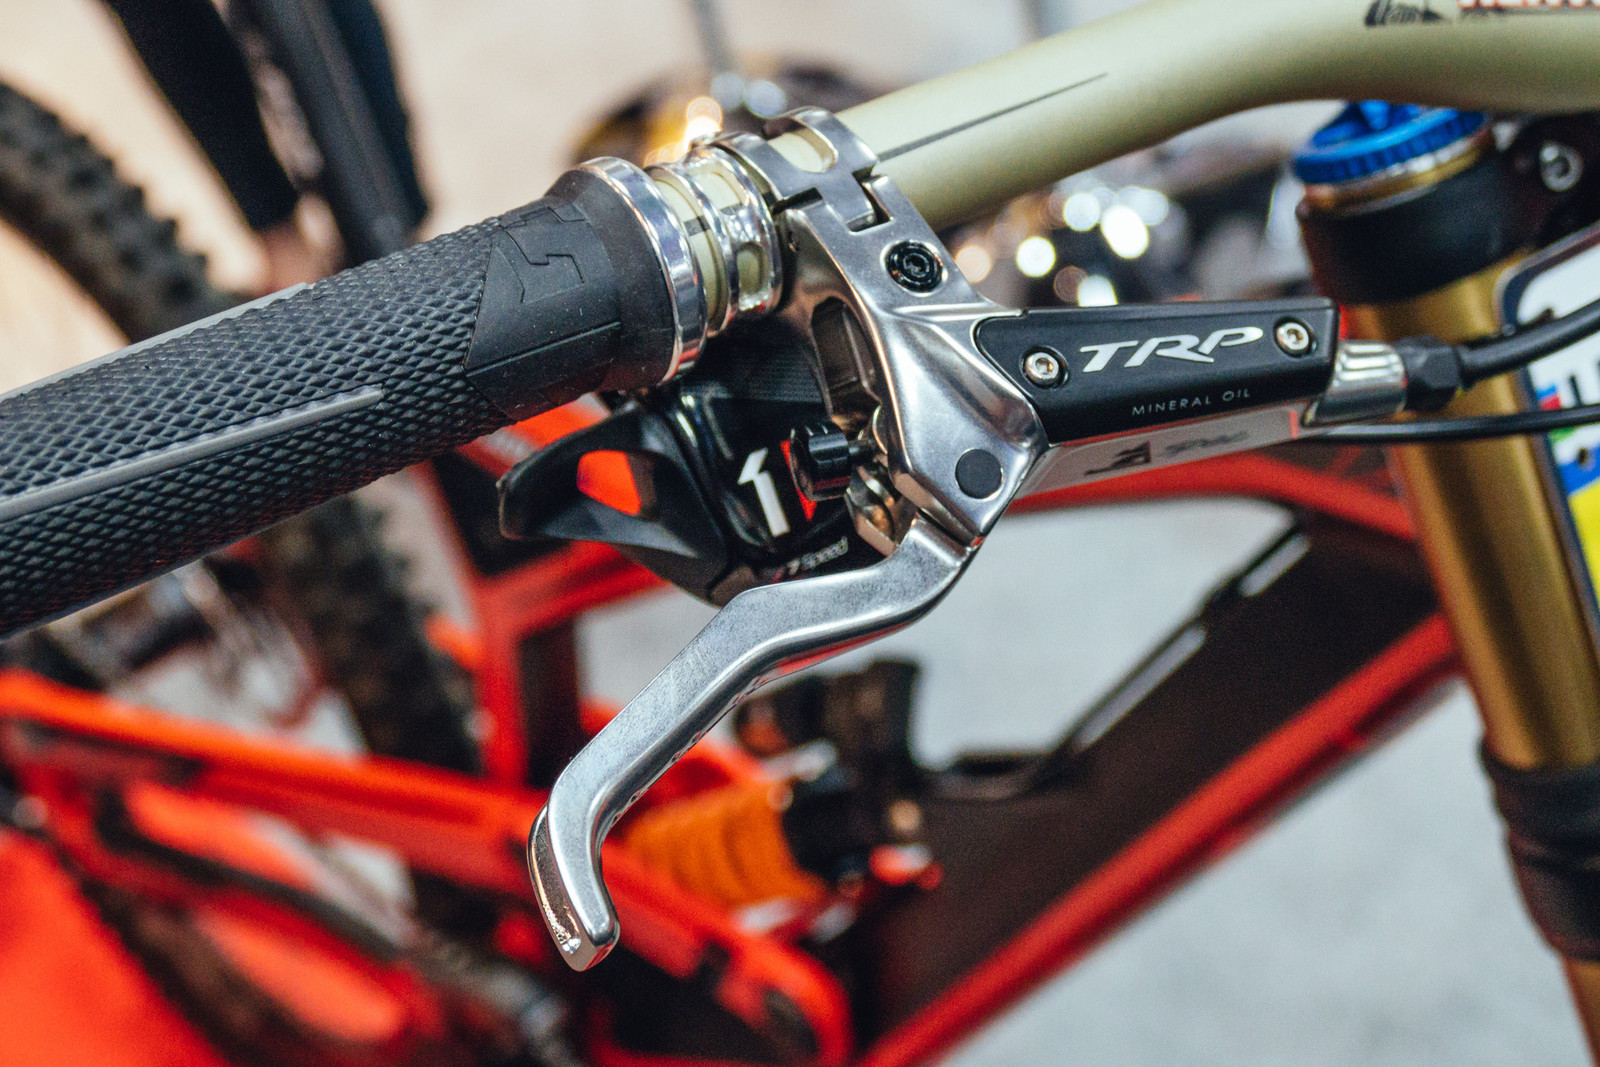 TRP G-Spec and Slate T4 Disc Brakes - INTERBIKE - 2017 Mountain Bike Components - Mountain Biking Pictures - Vital MTB